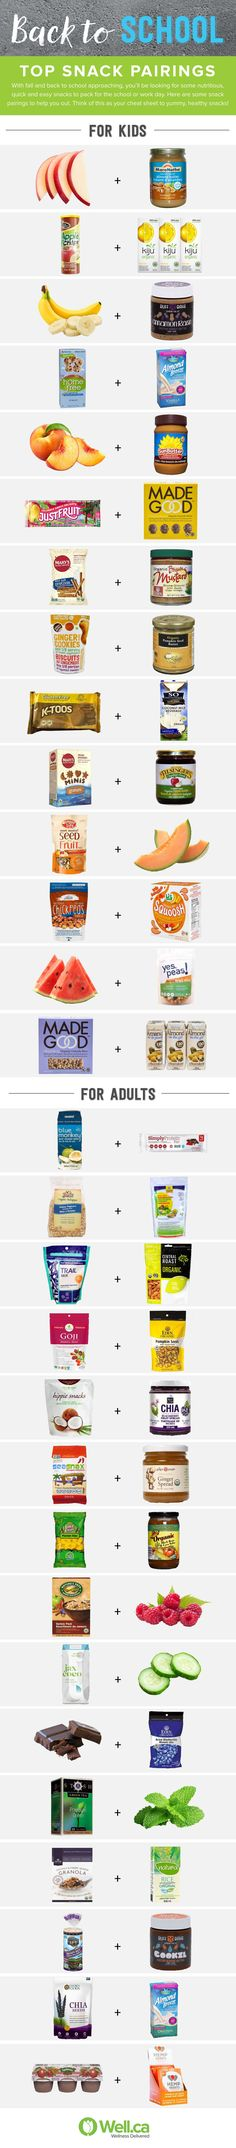 Top Snack Pairings for Fall